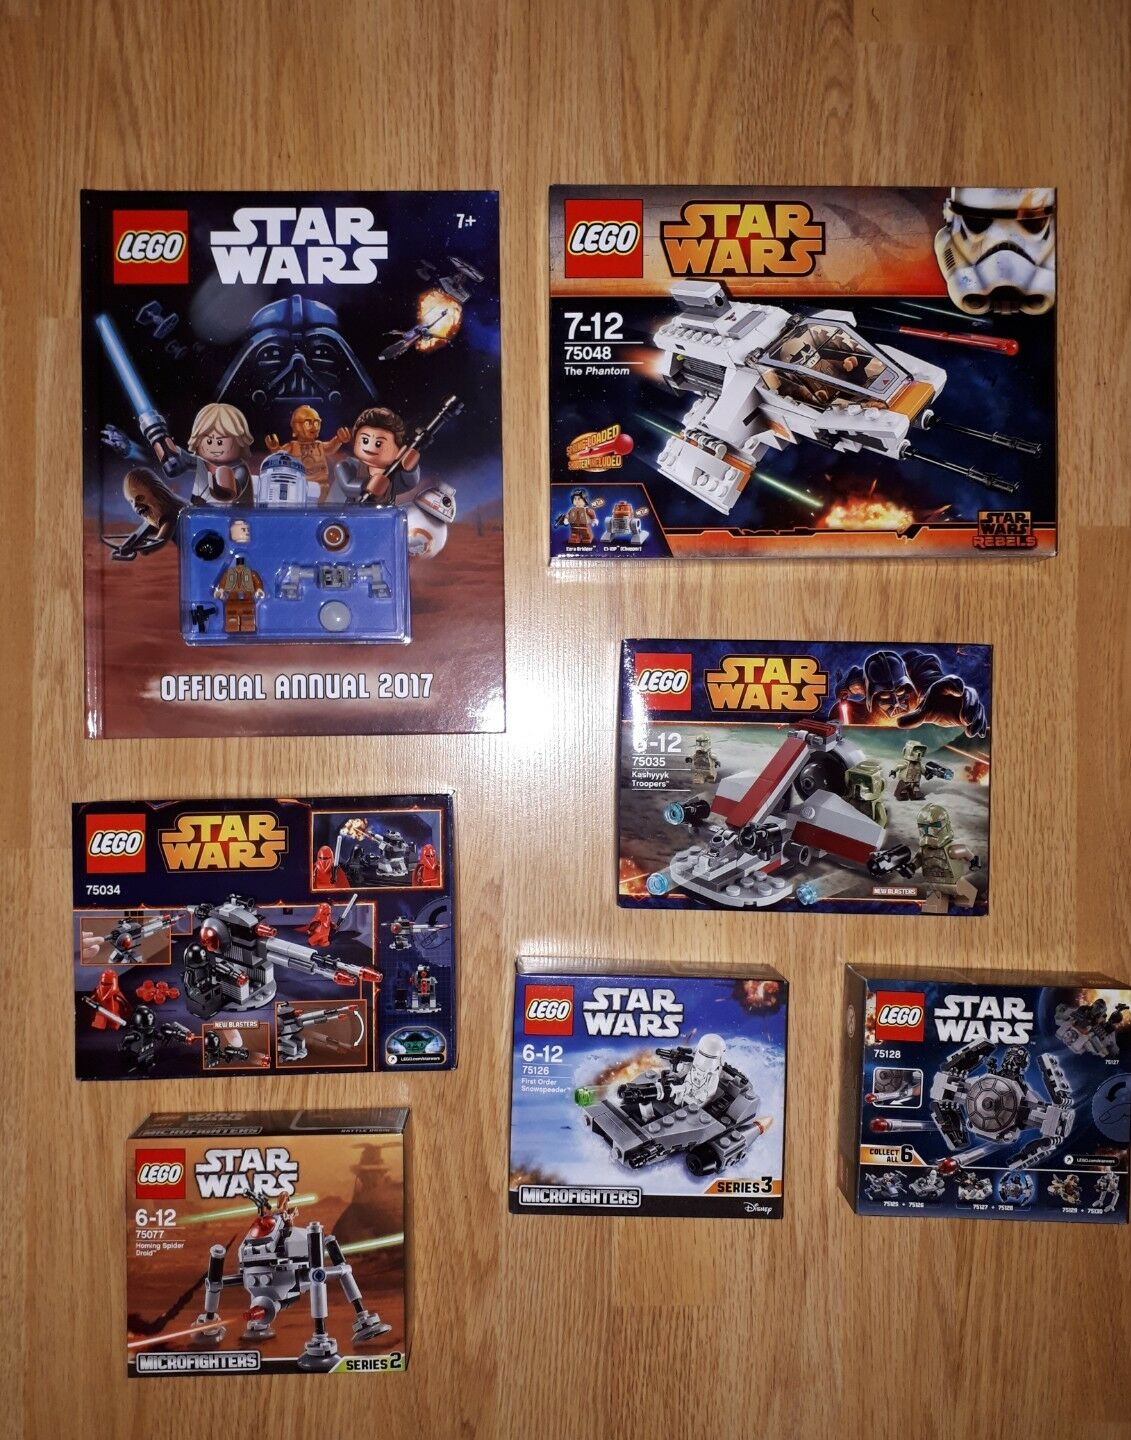 6 x LEGO STAR WARS SETS + 2017 Annual - 75034 - 75035  - 75048 - 75077 - All New